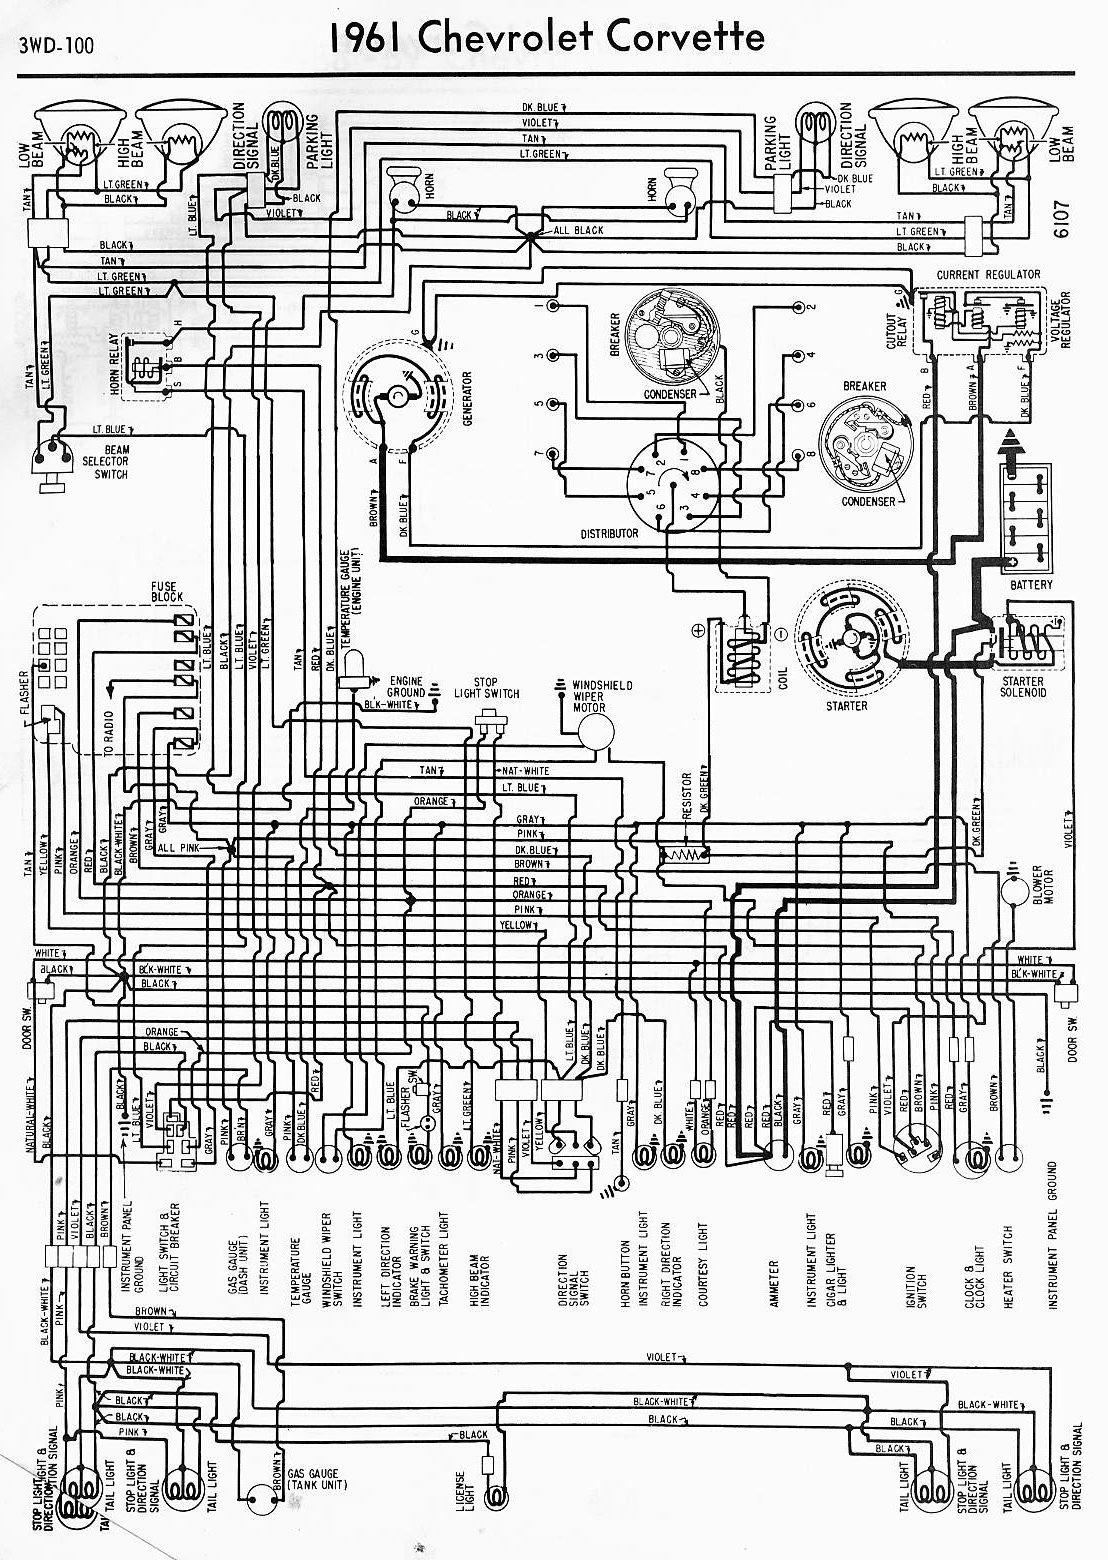 hight resolution of wiring diagram for 1961 chevrolet corvette wiring diagram todaywiring diagrams of 1961 chevrolet corvette diagram data